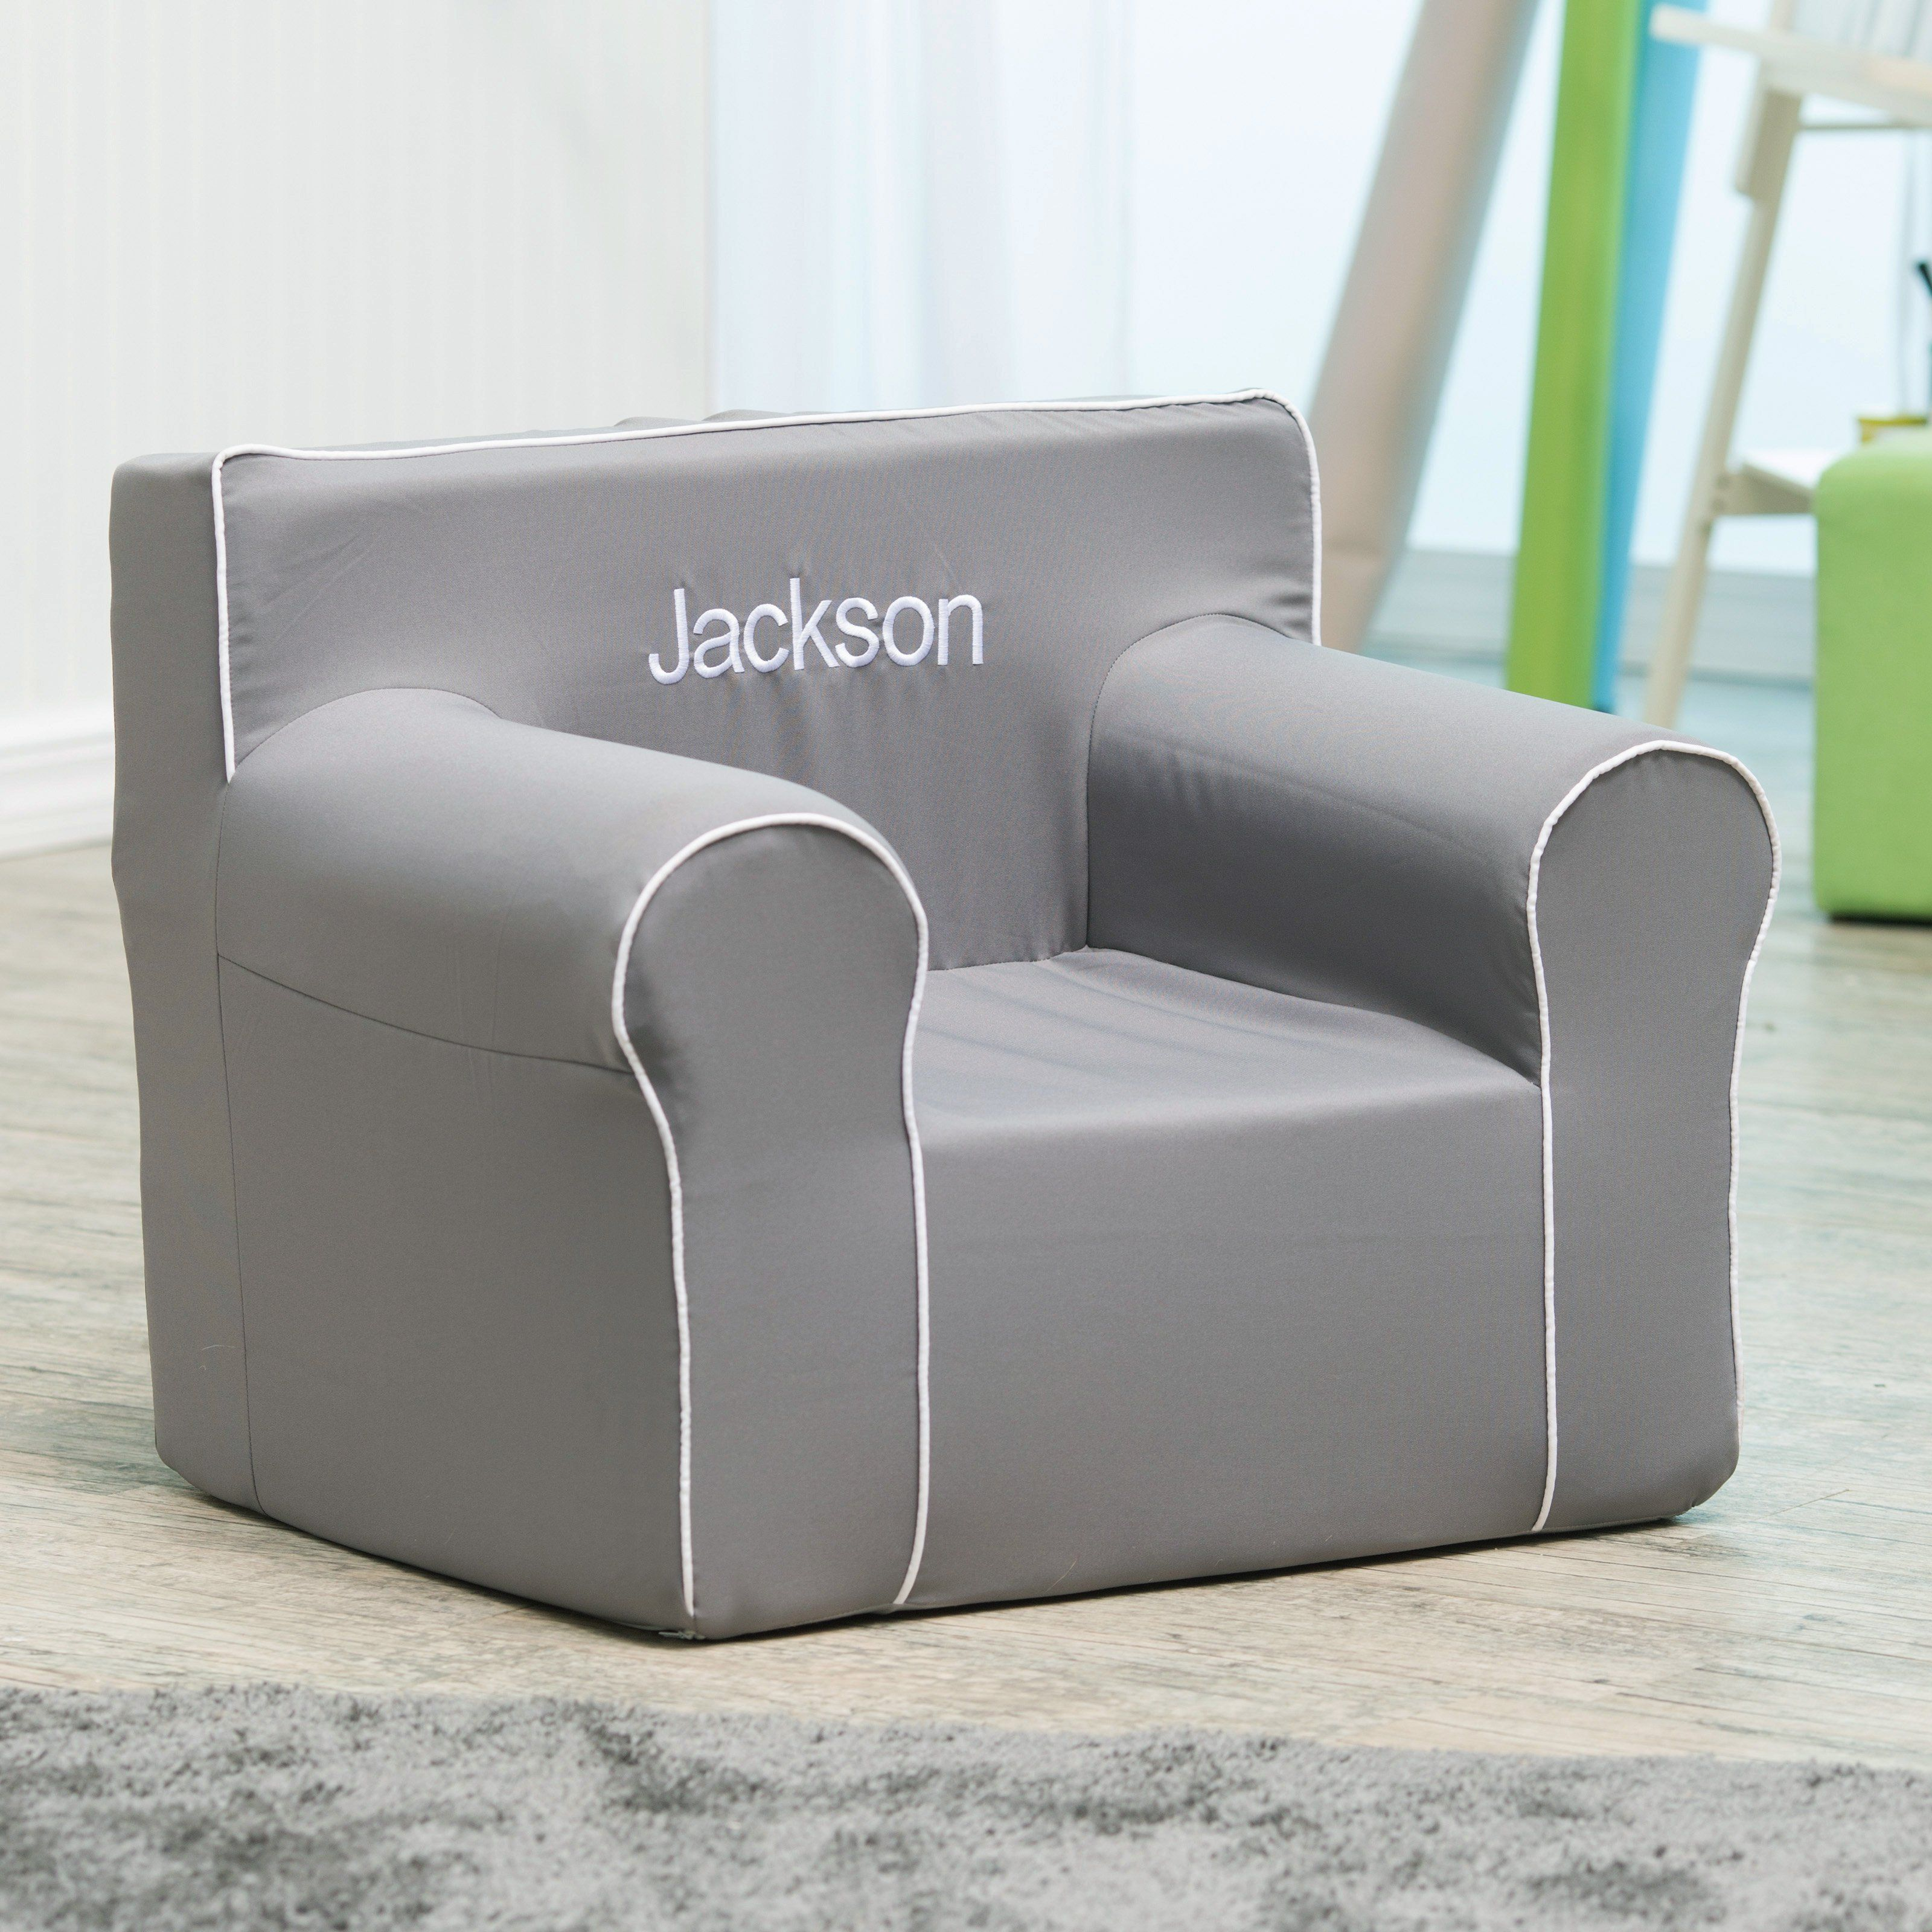 Here and There Personalized Kids Chair Gray Canvas with White